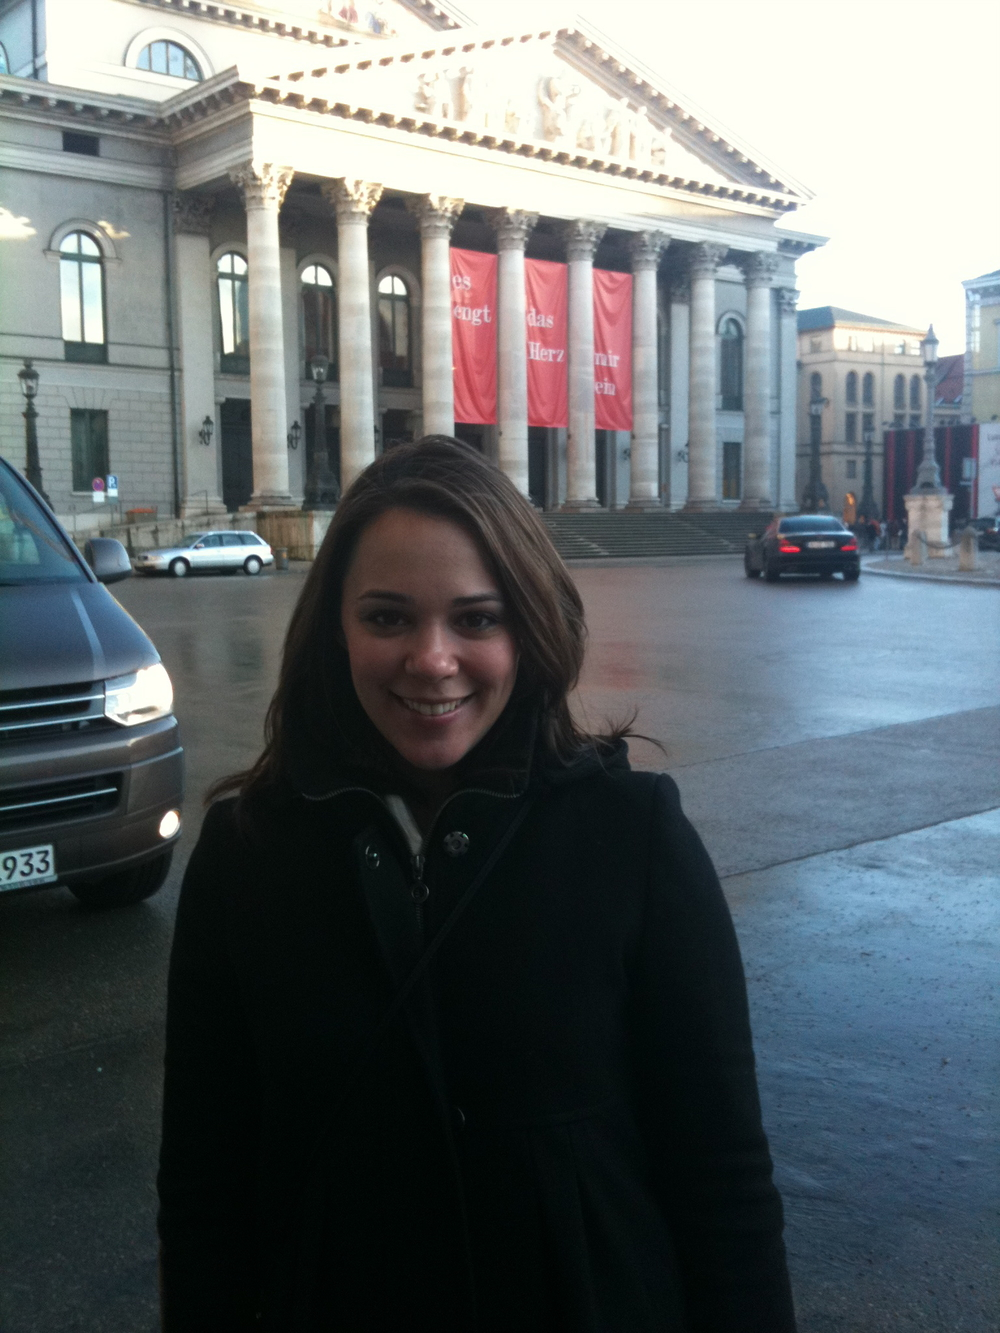 My debut at the Bayerische Staatsoper